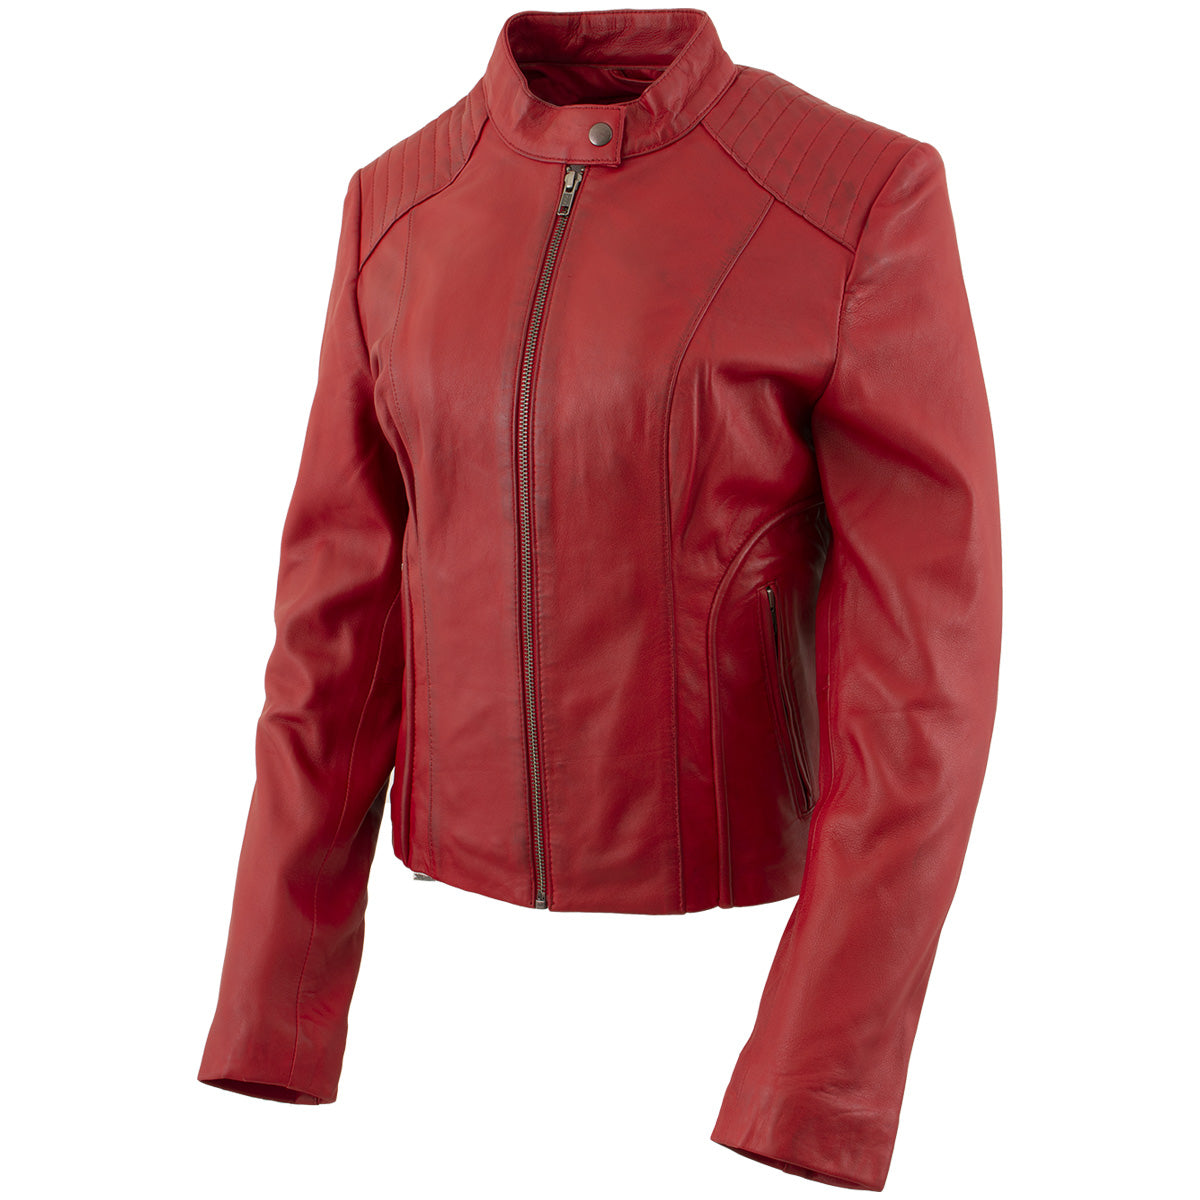 Xelement B91066 Ladies 'Keeper' Red Leather Scuba Style Jacket with